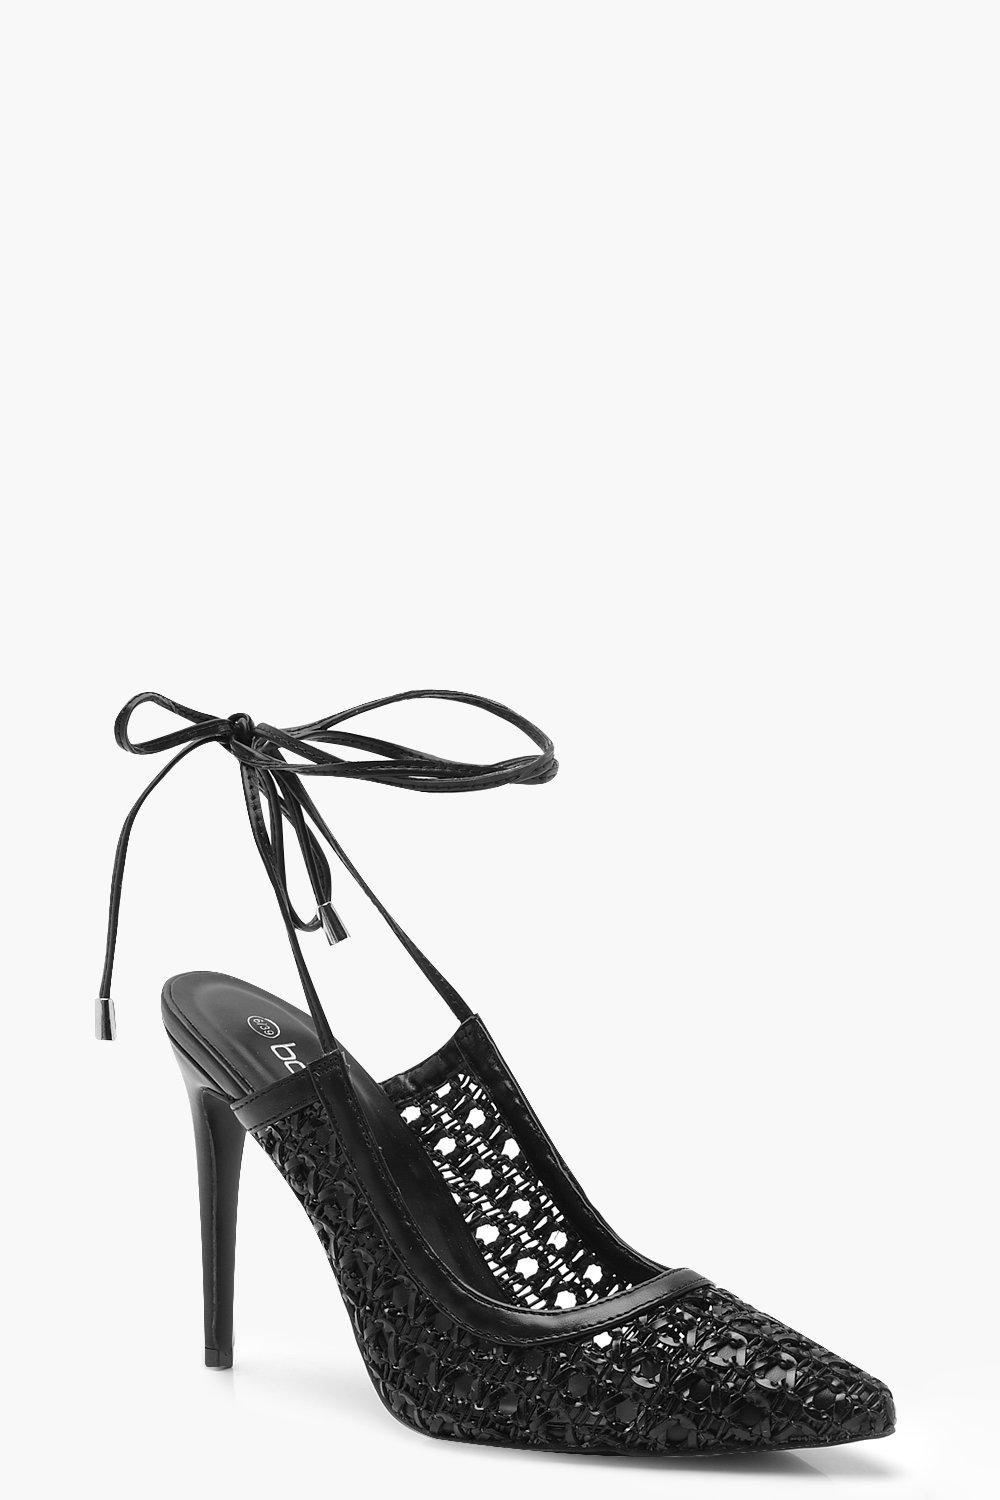 Womens Woven Wrap Pointed Court Shoe Heels - Black - 4